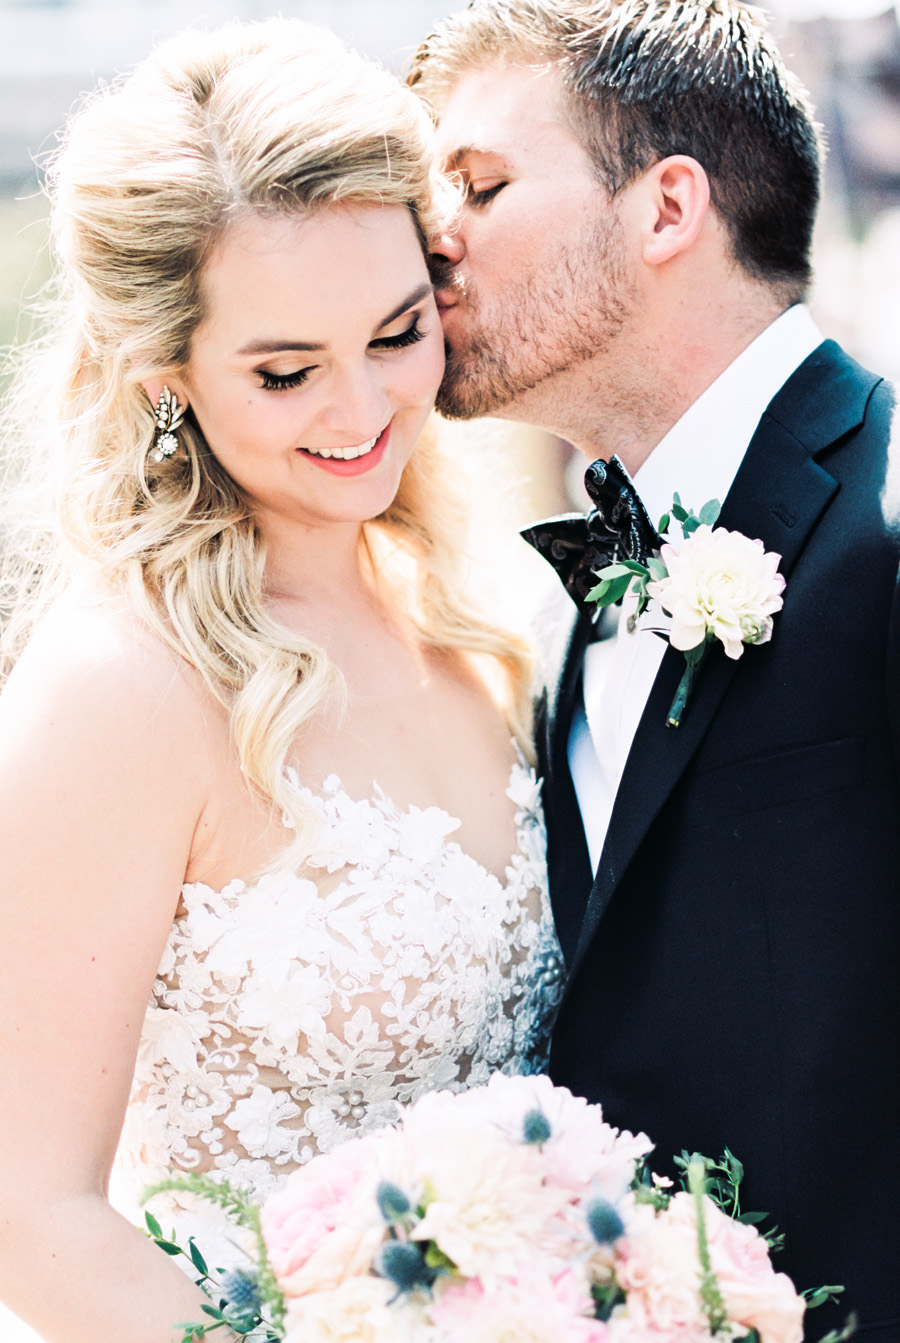 Groom kisses his bride on the cheek.